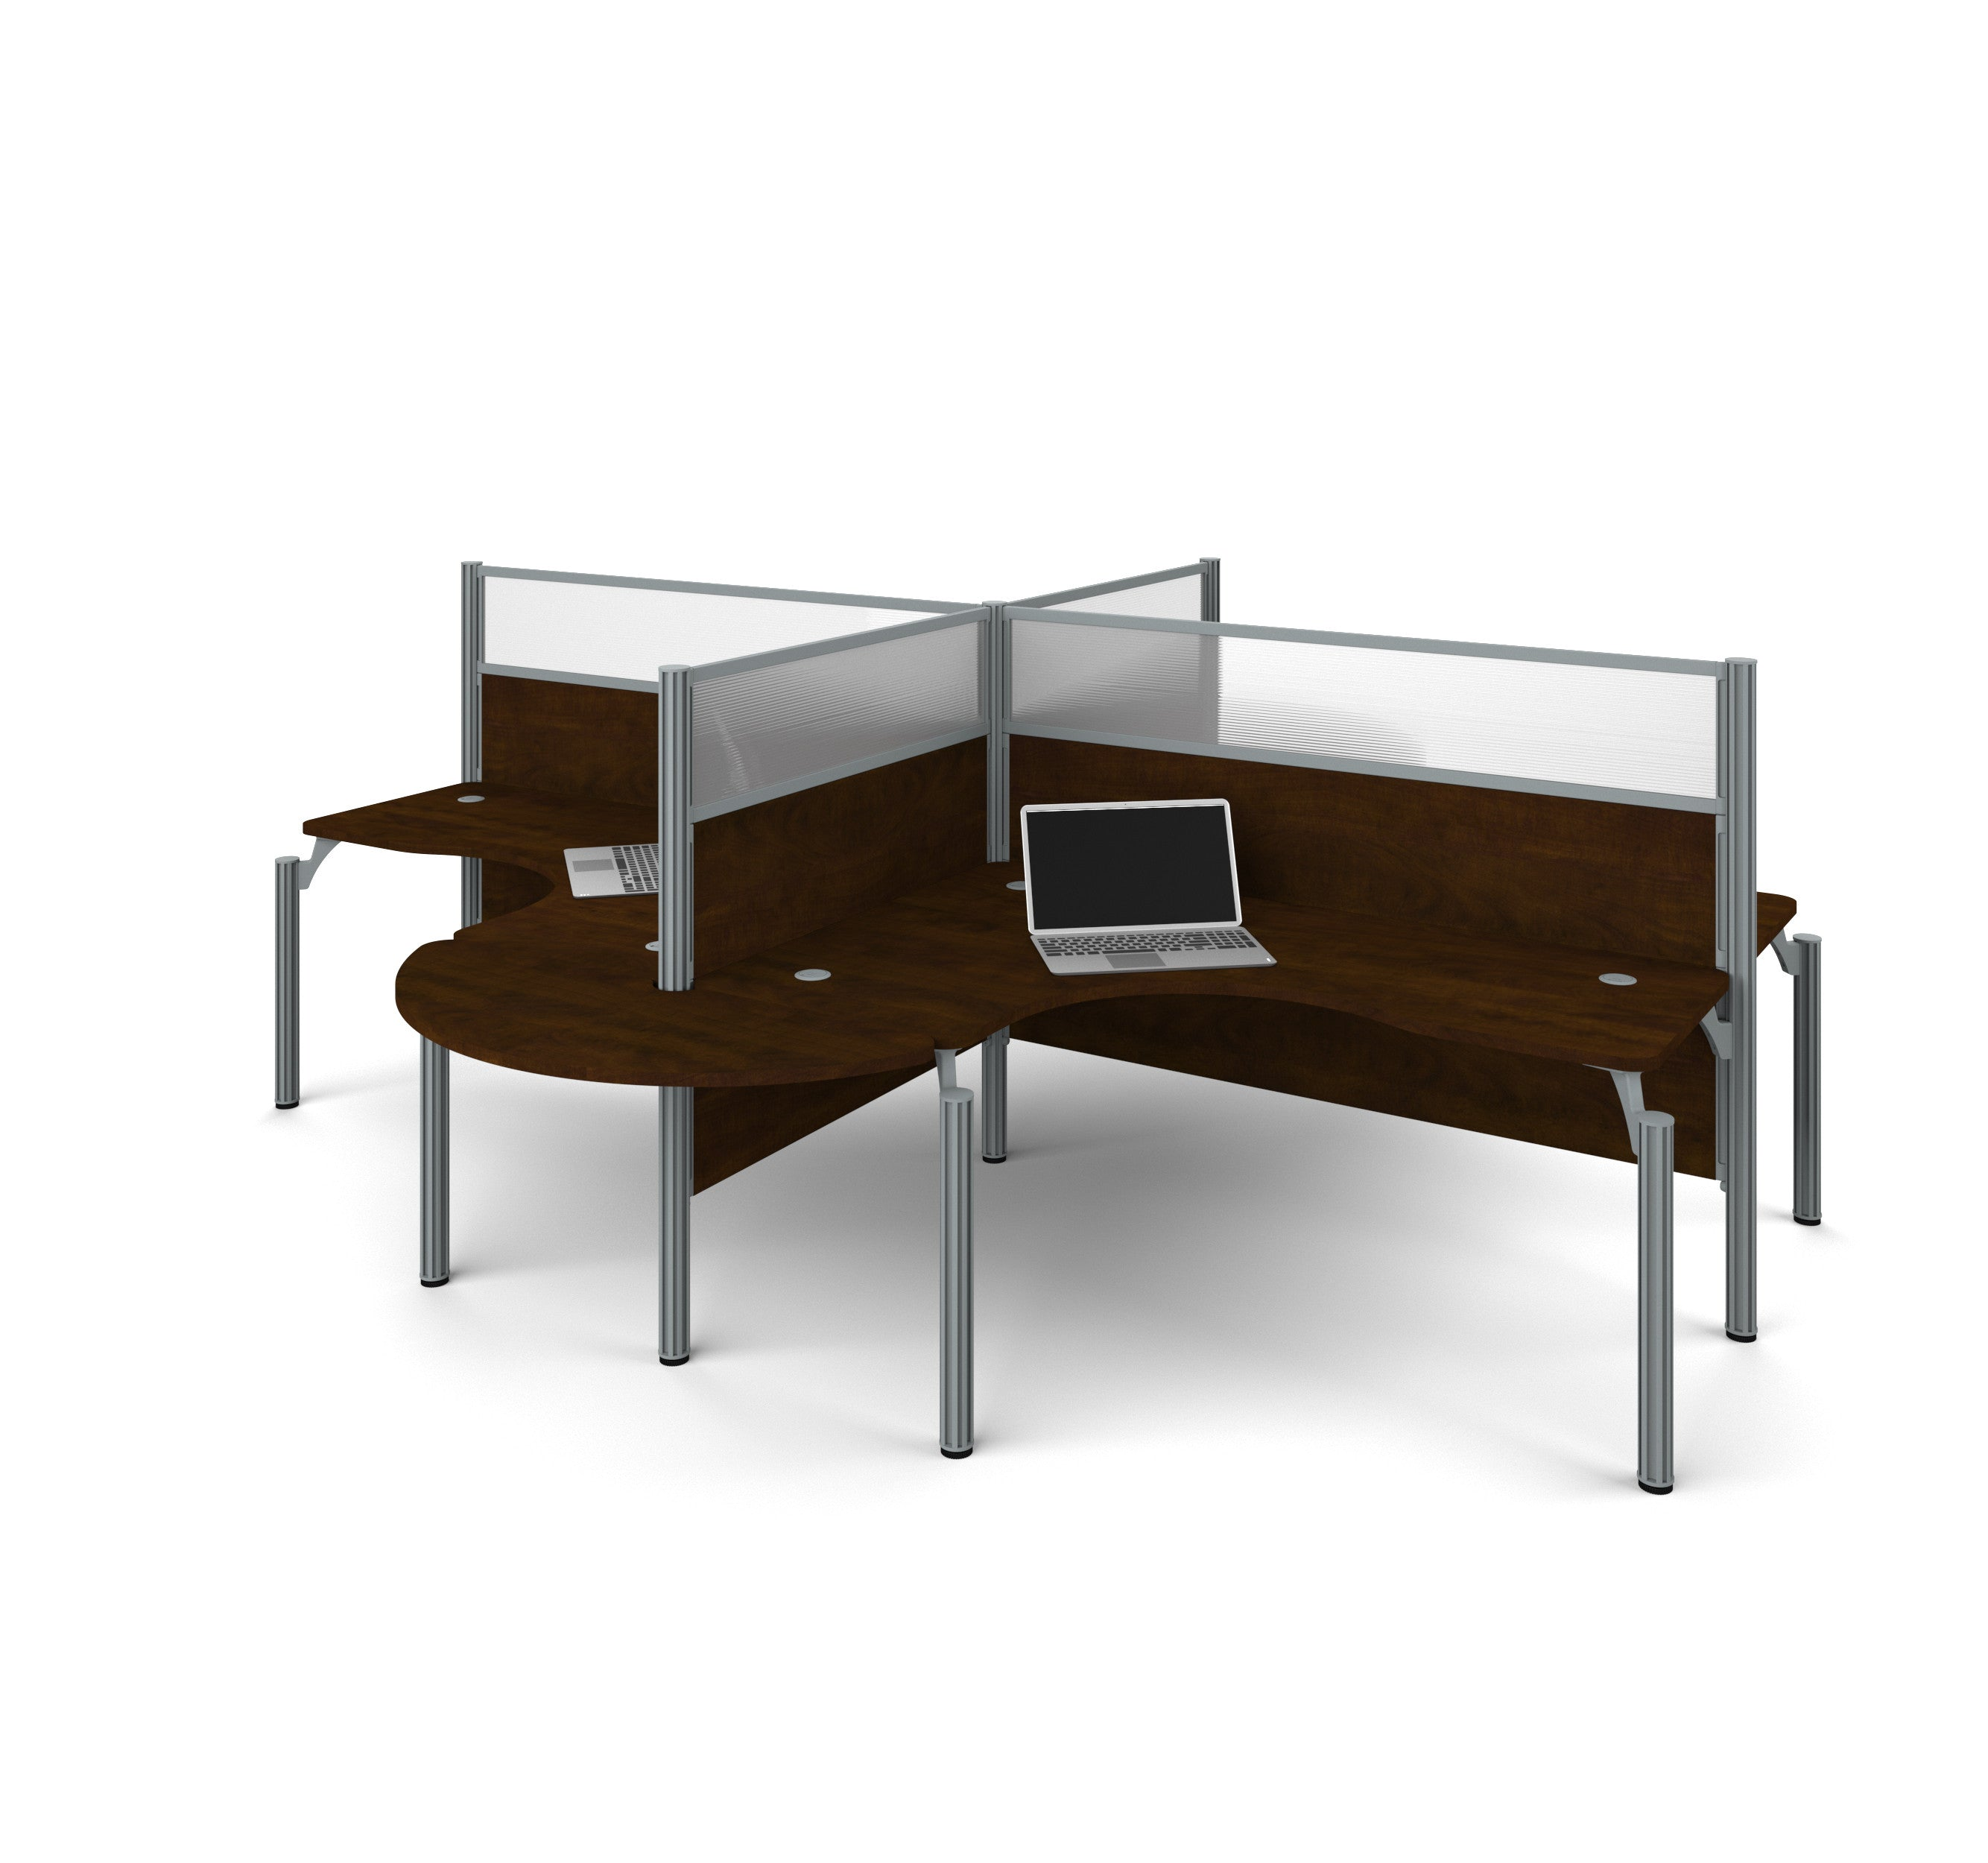 "Pro-Biz Quad Desk in Chocolate with Rounded Edges & 55"" Privacy Panels"